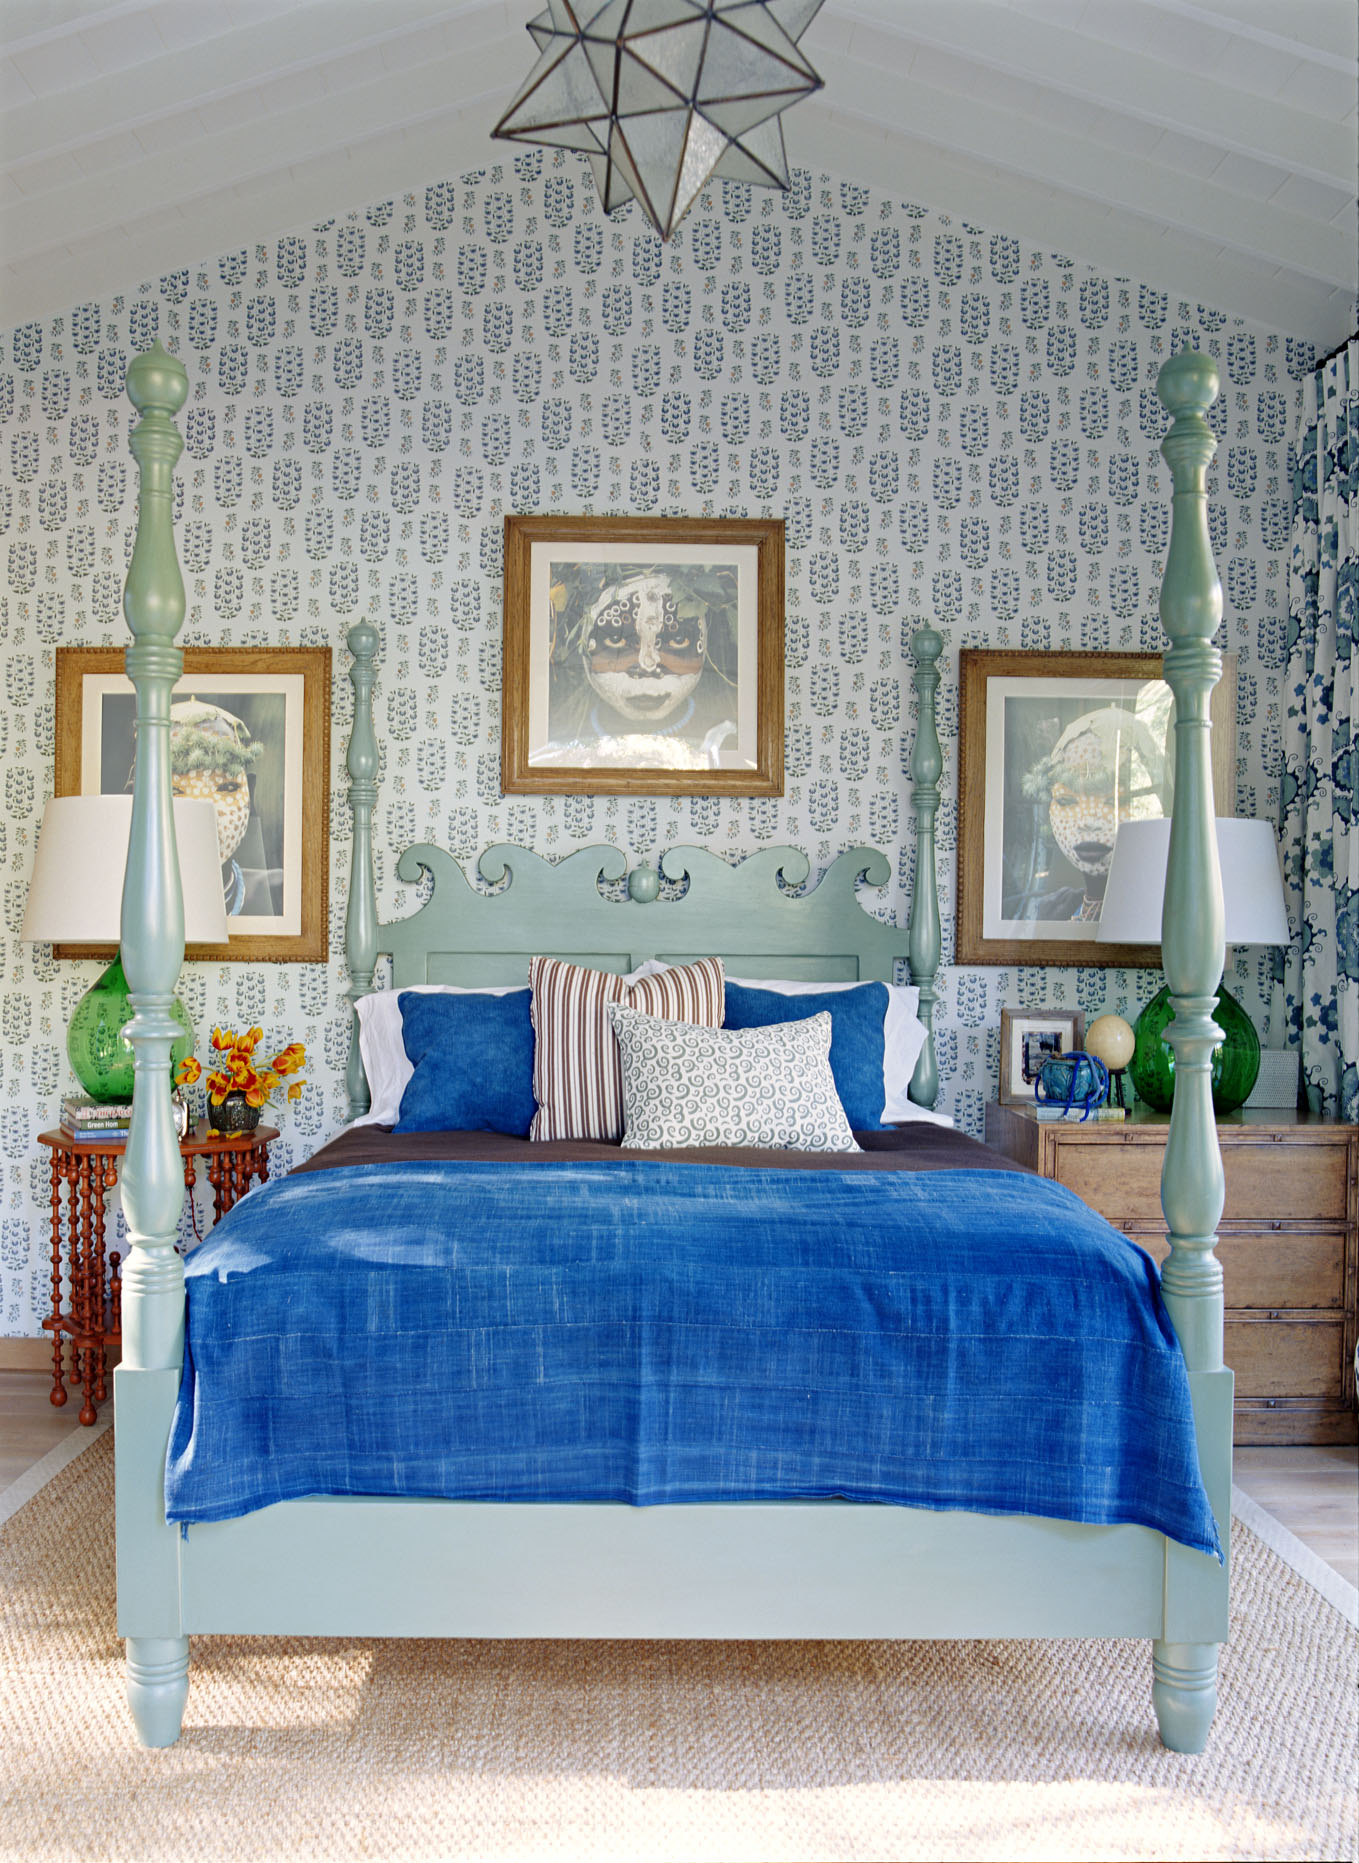 101 Bedroom Decorating Ideas in 2017 - Designs for ... on Beautiful Room Decor  id=63356